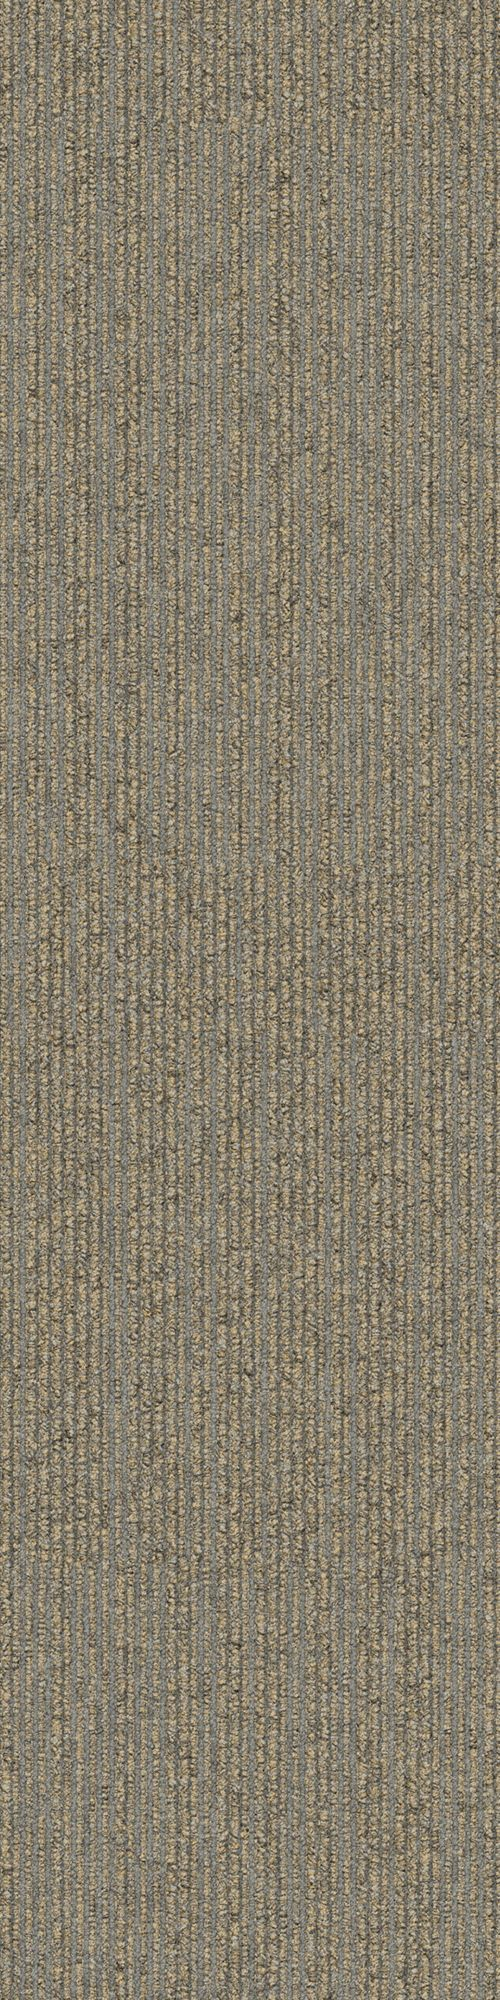 Interface carpet tile: On Line Color name: Pigeon